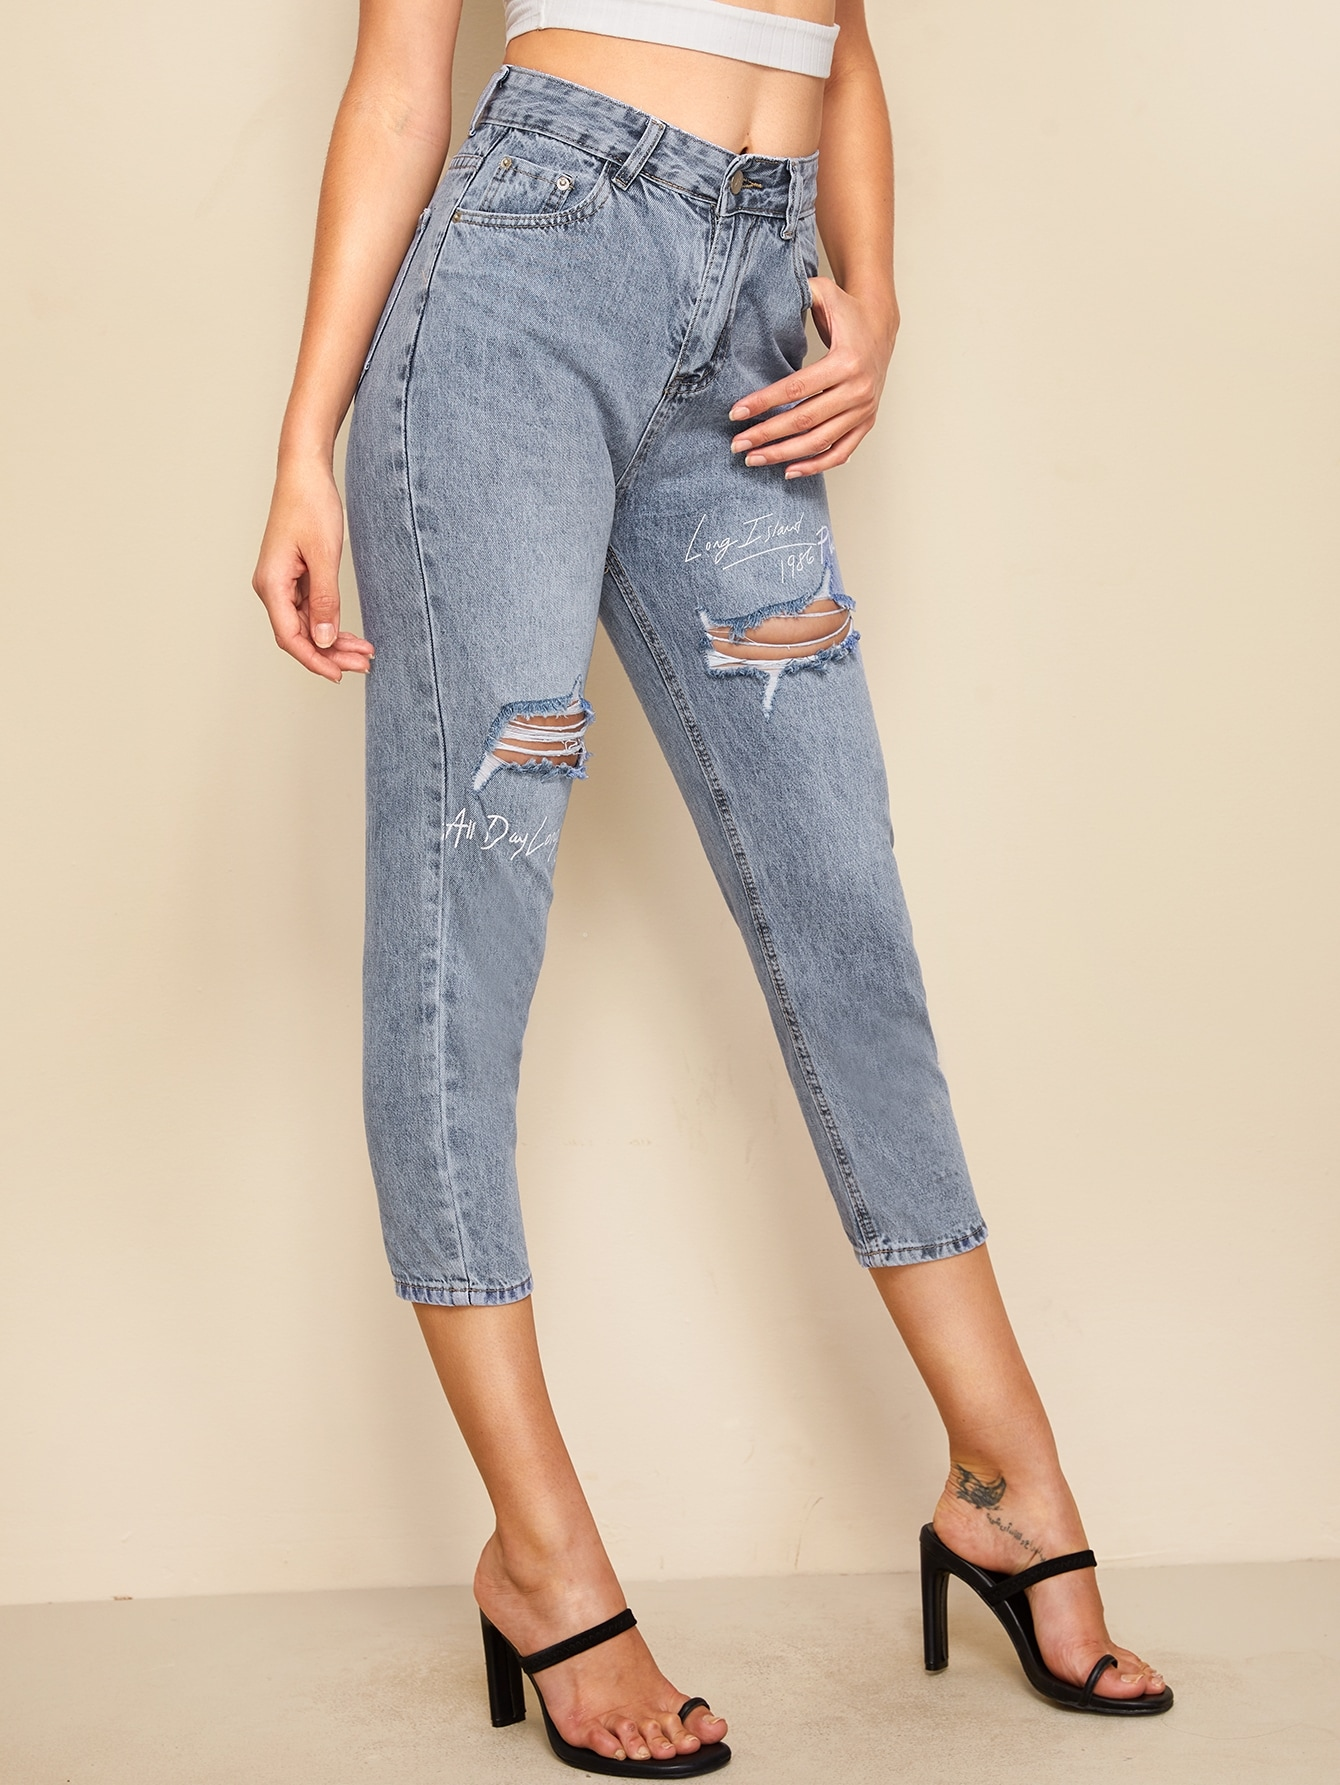 7e78c7efe51a Jeans. Compare prices in Etwish.co.uk products list